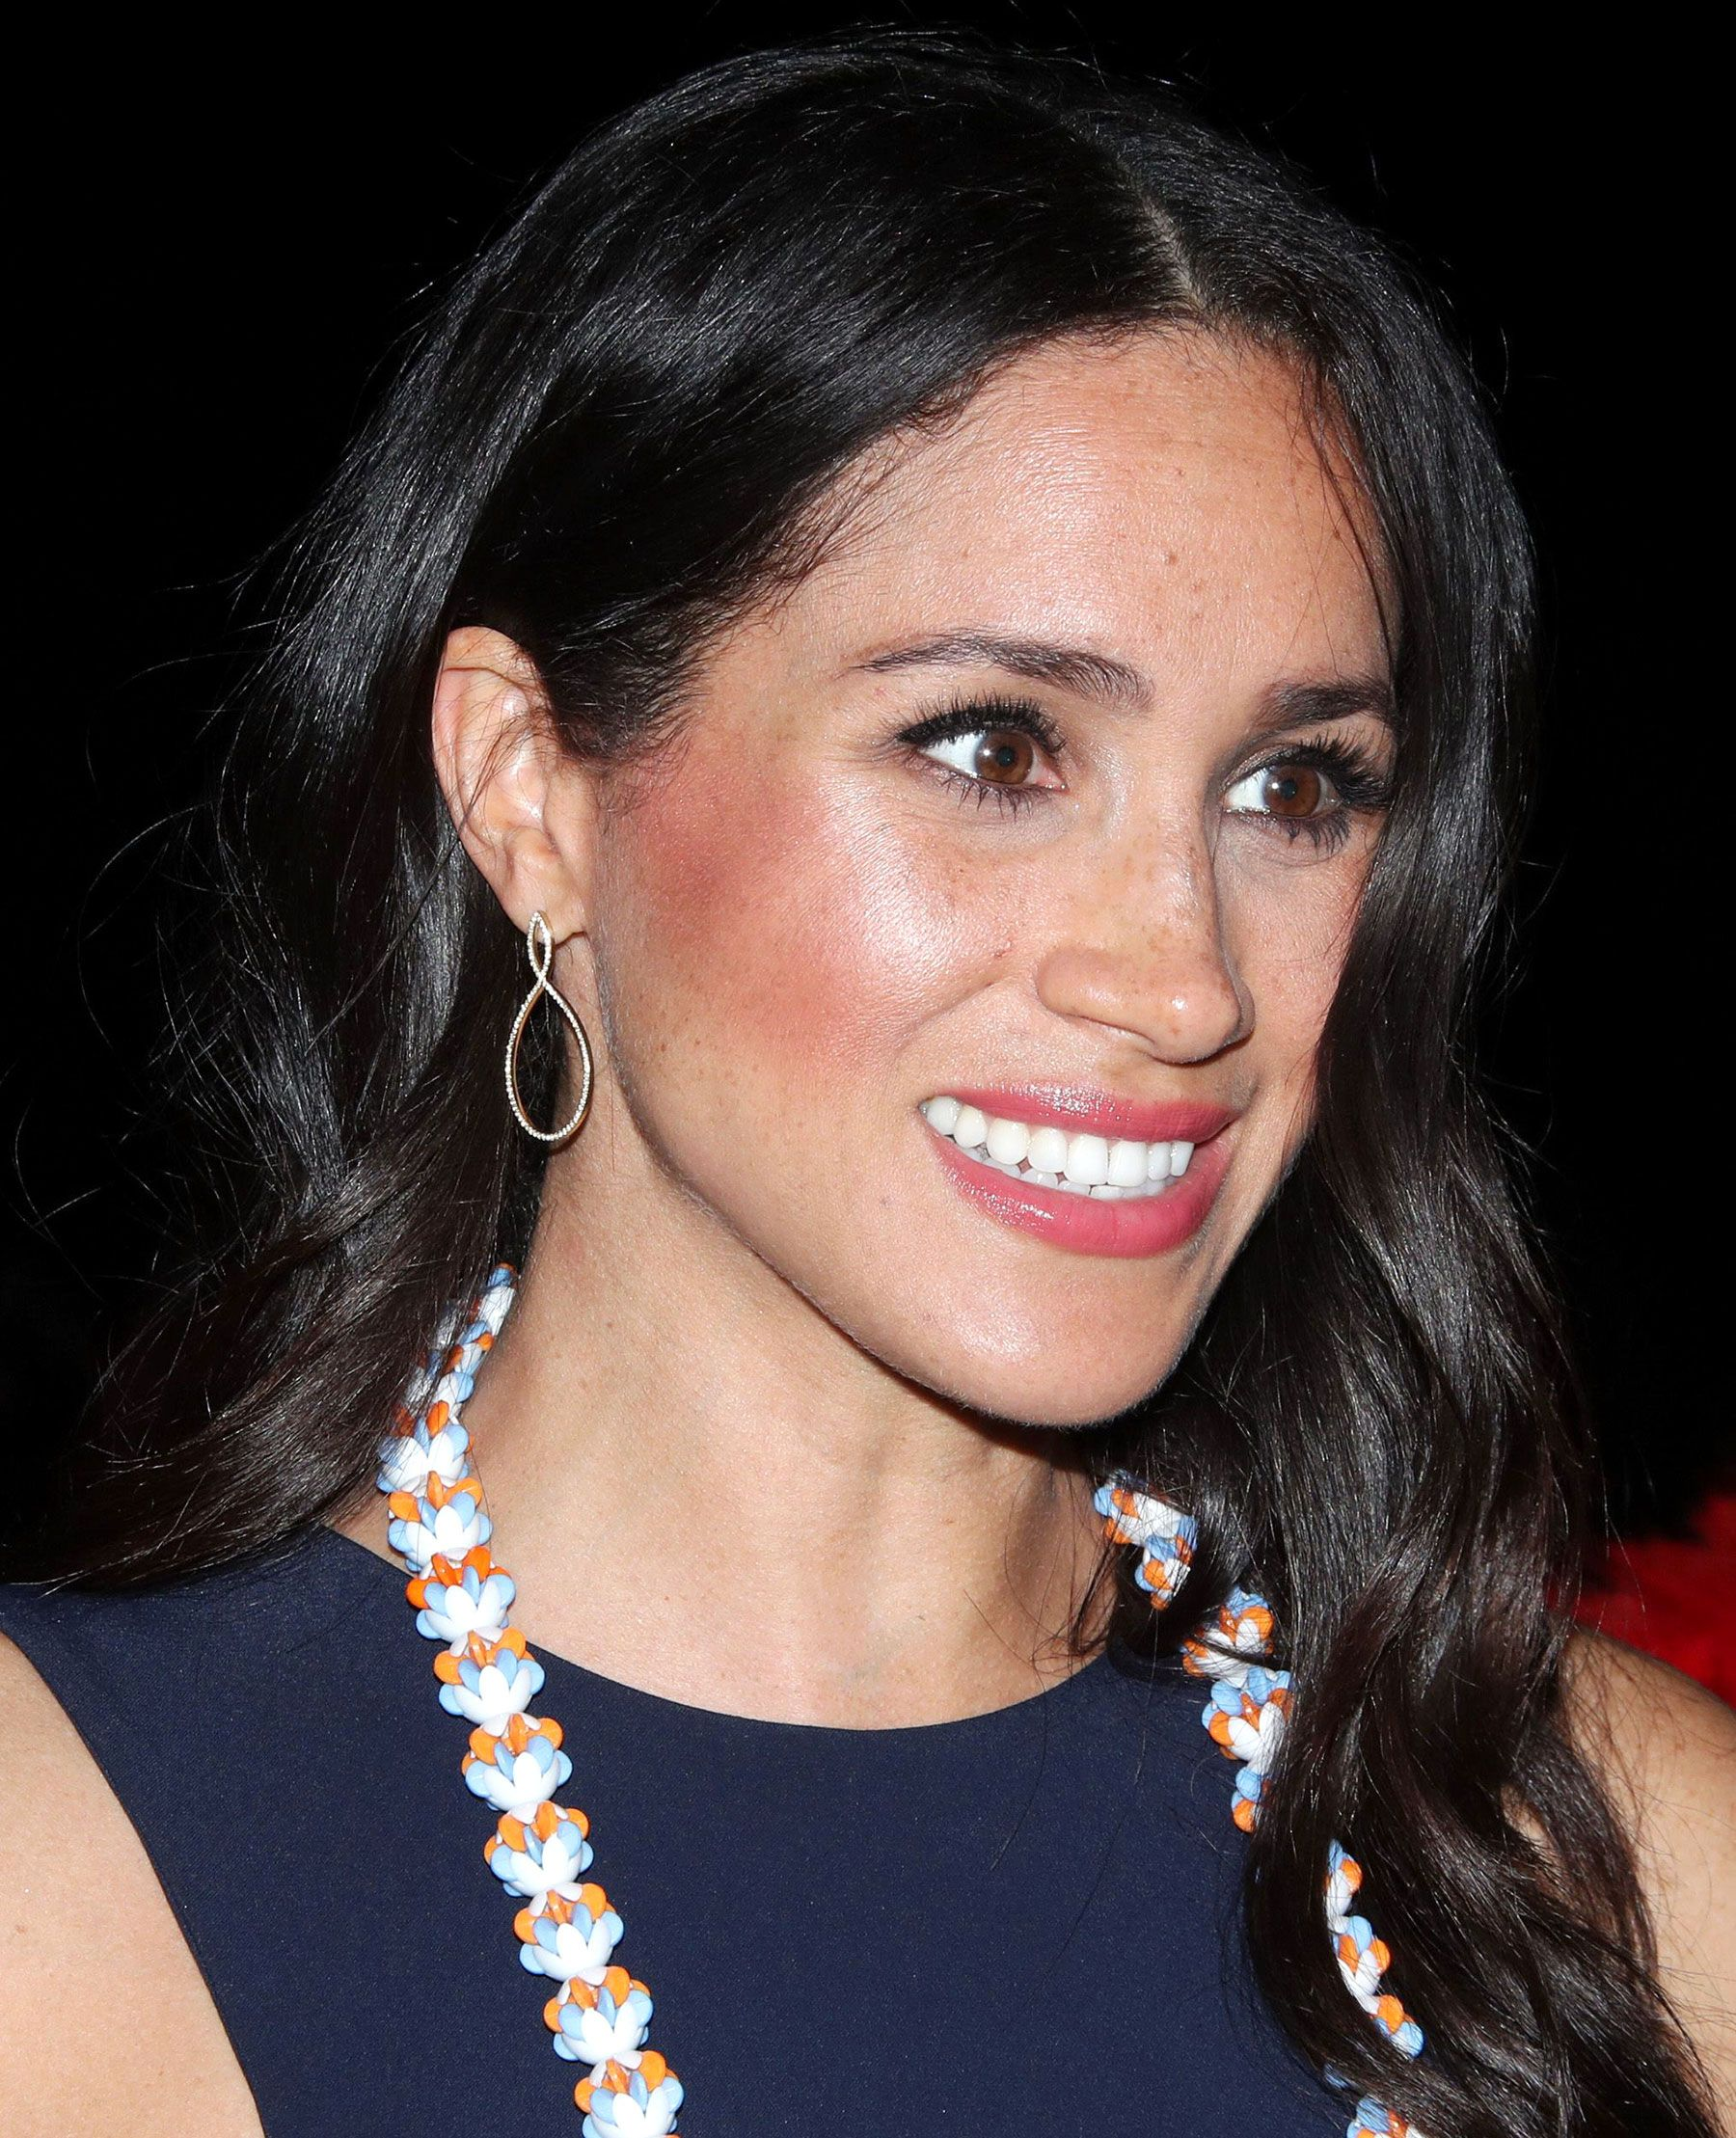 Jeweler Learns Meghan Markle Received Earrings She Gifted